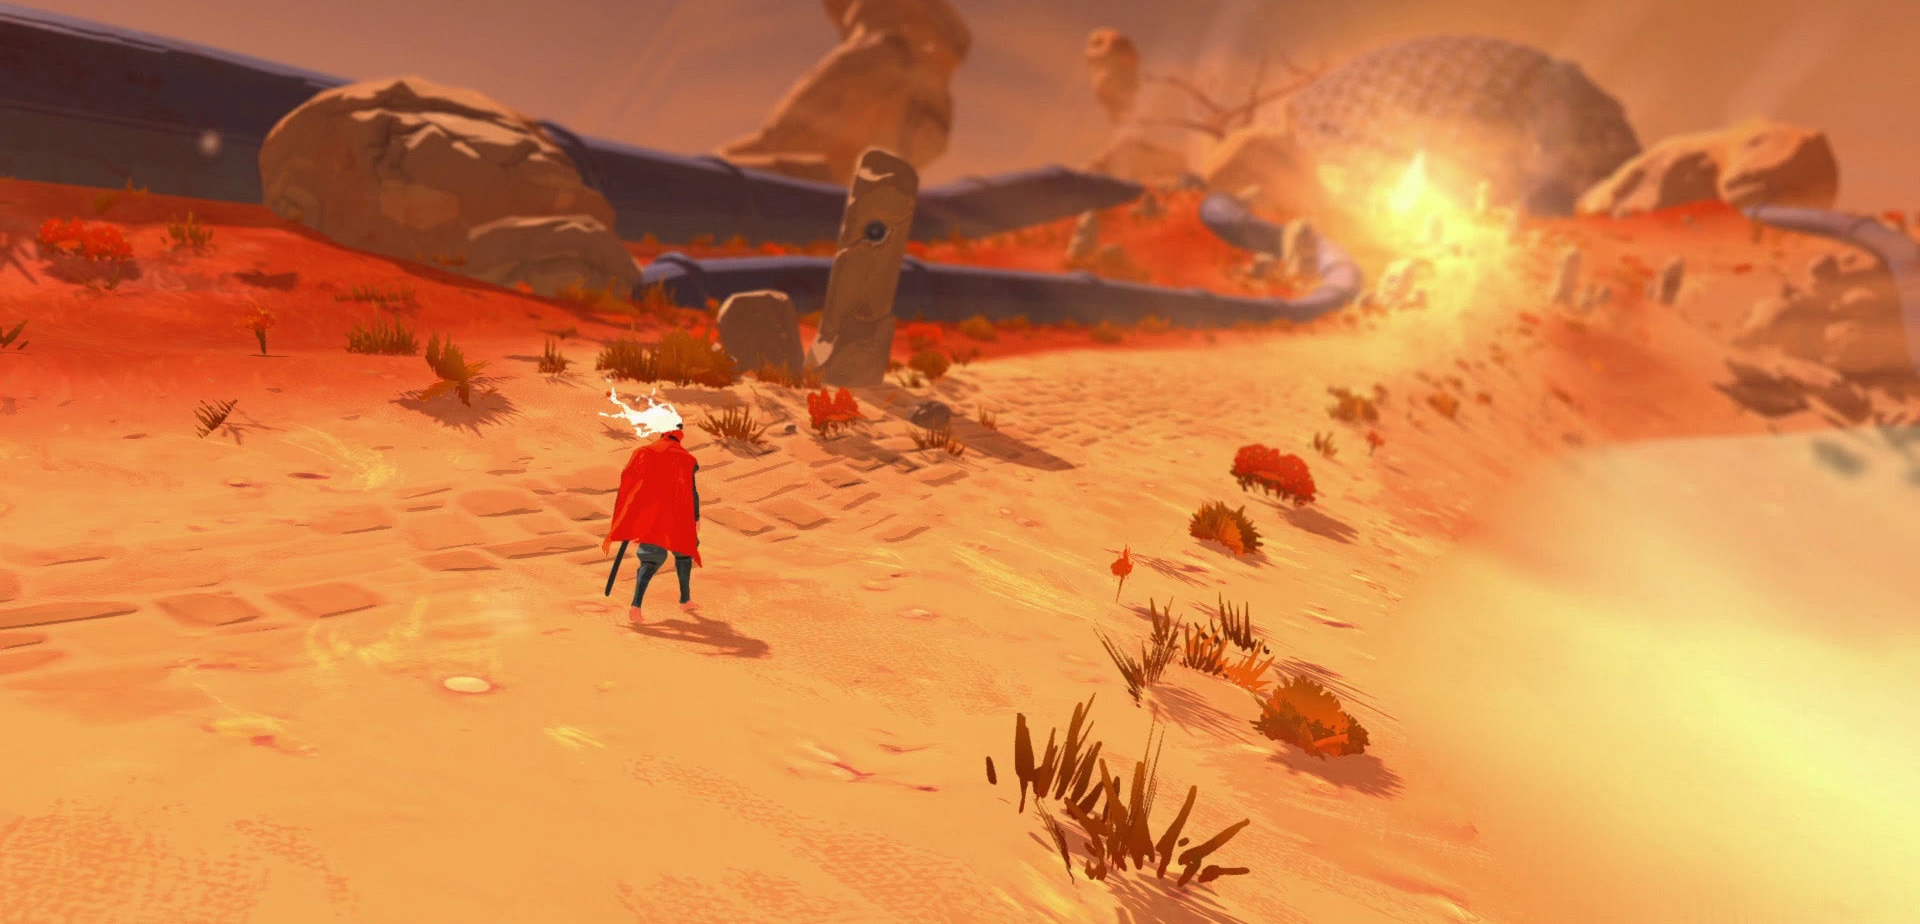 Tricky action game Furi adds Invincible mode screenshot